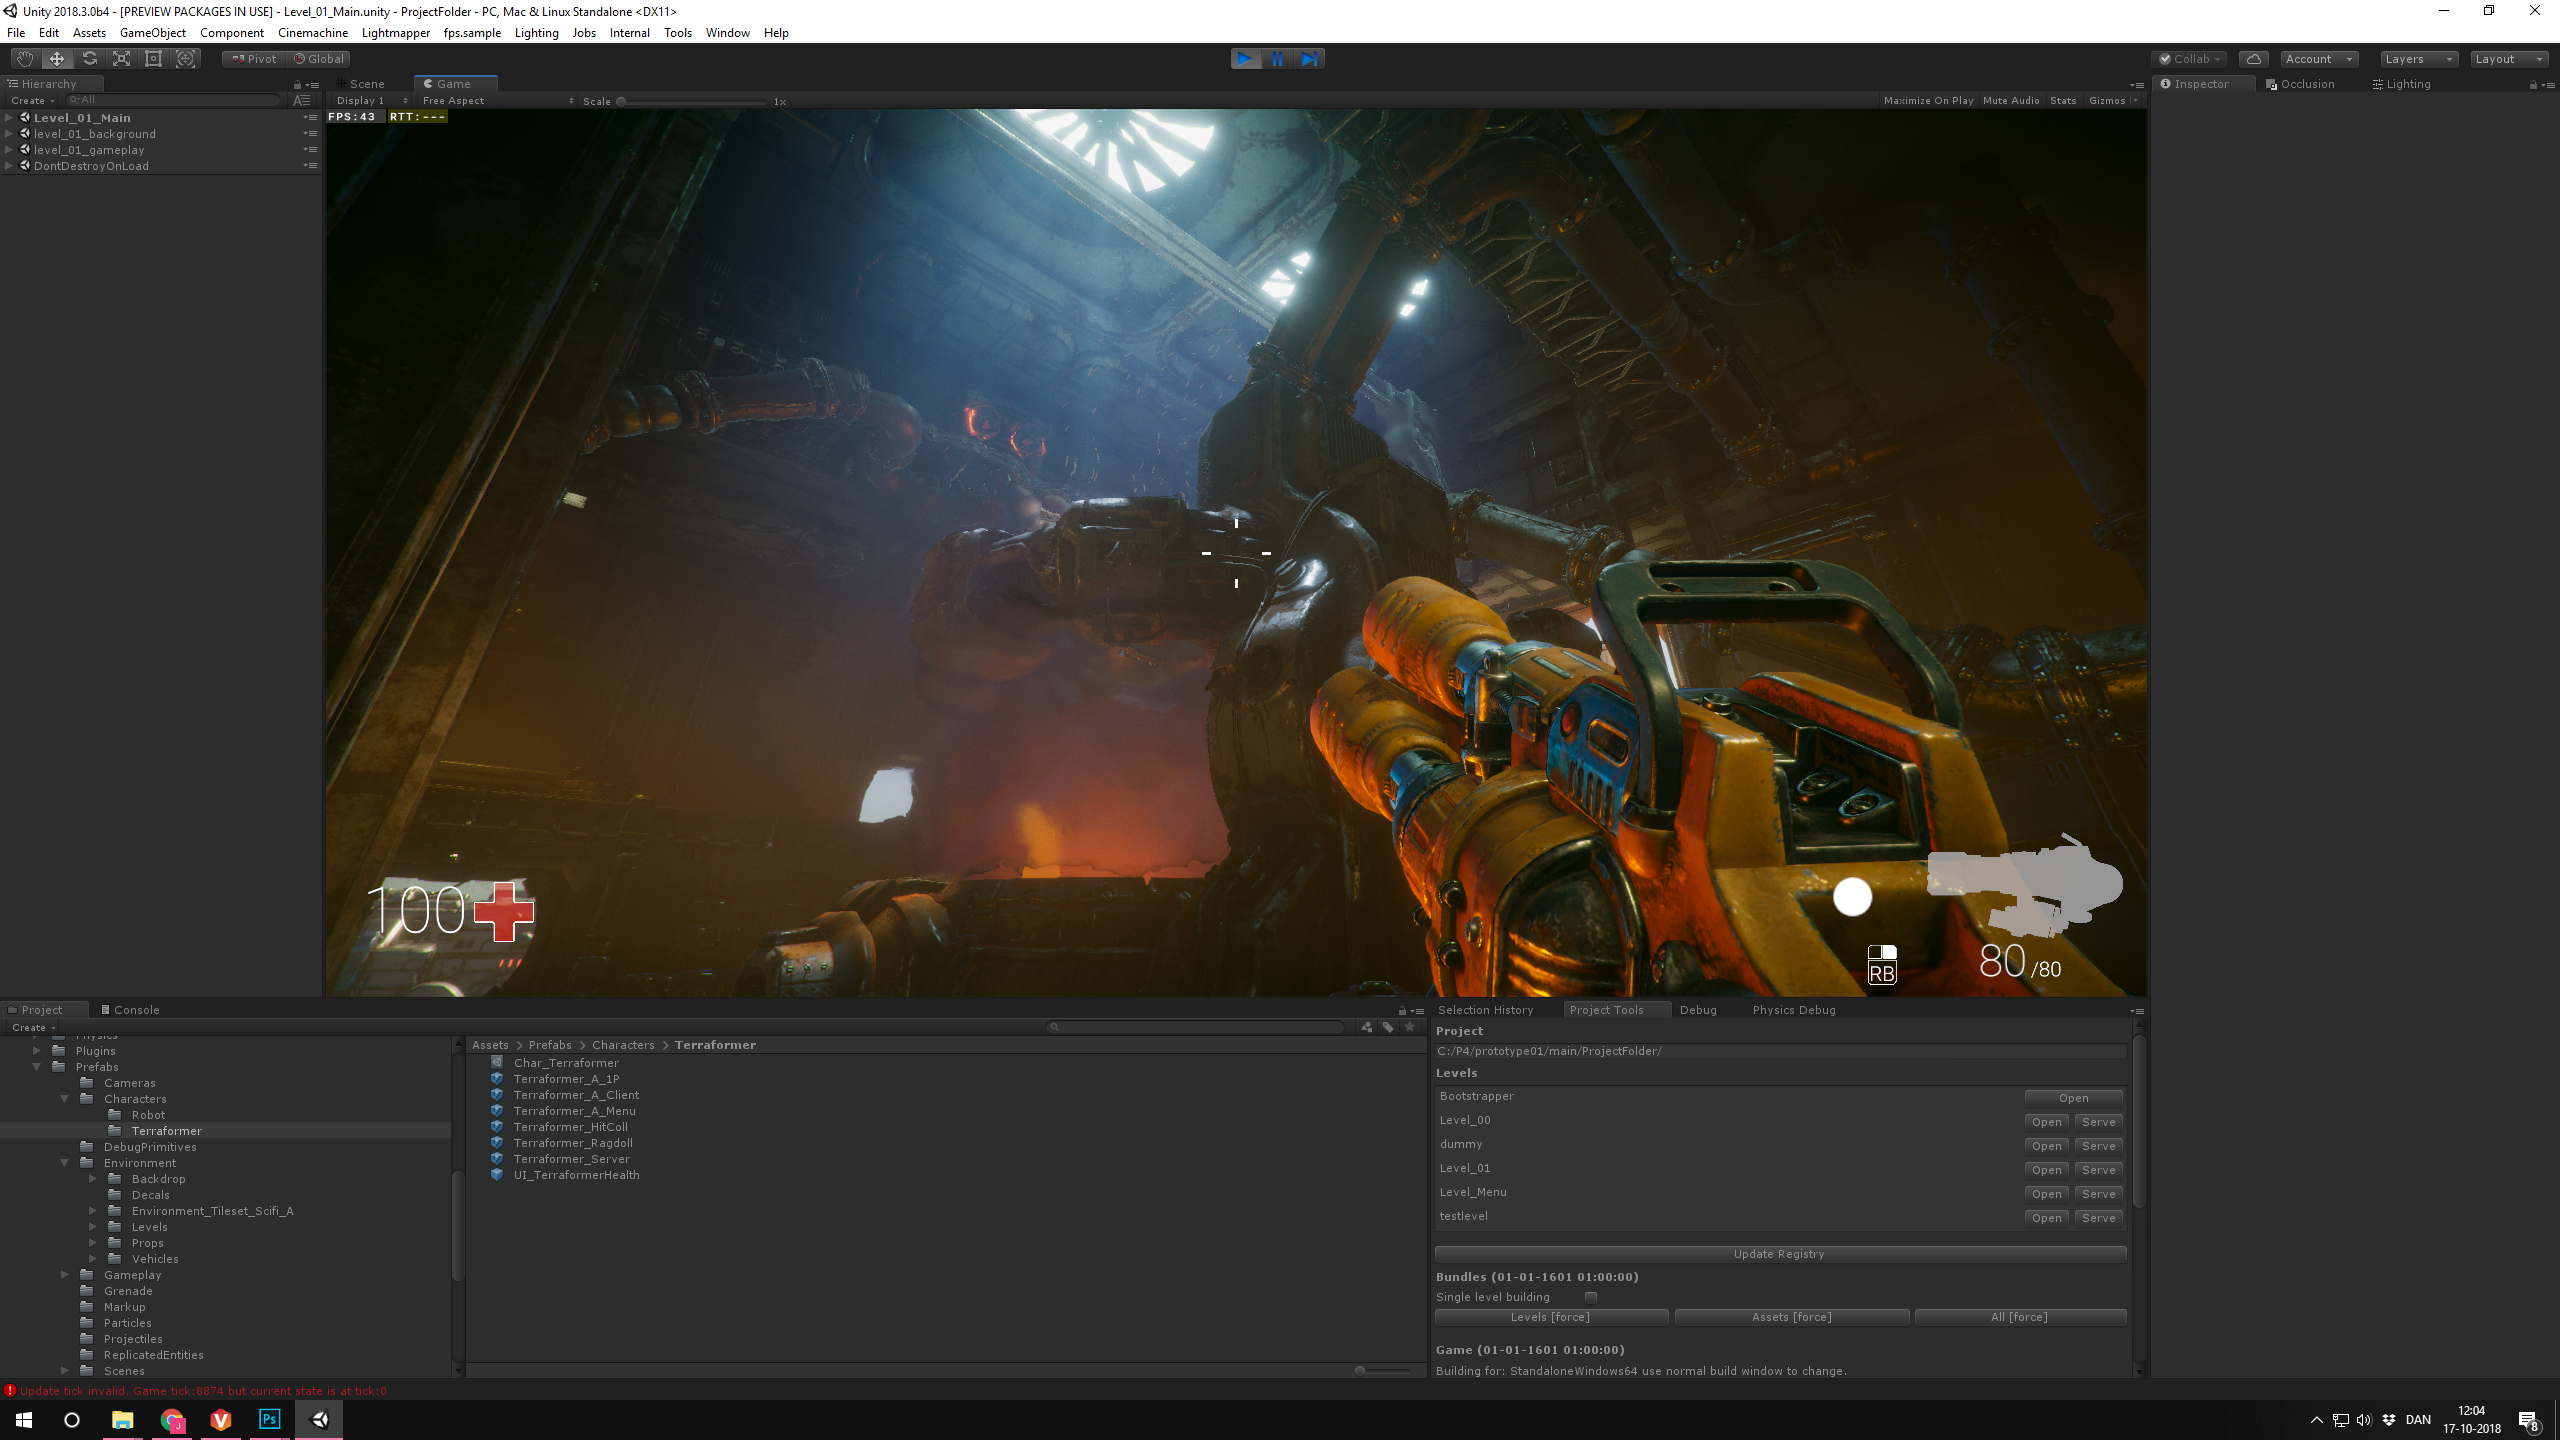 Unity dabbles in development with FPS Sample Game | GamesIndustry biz